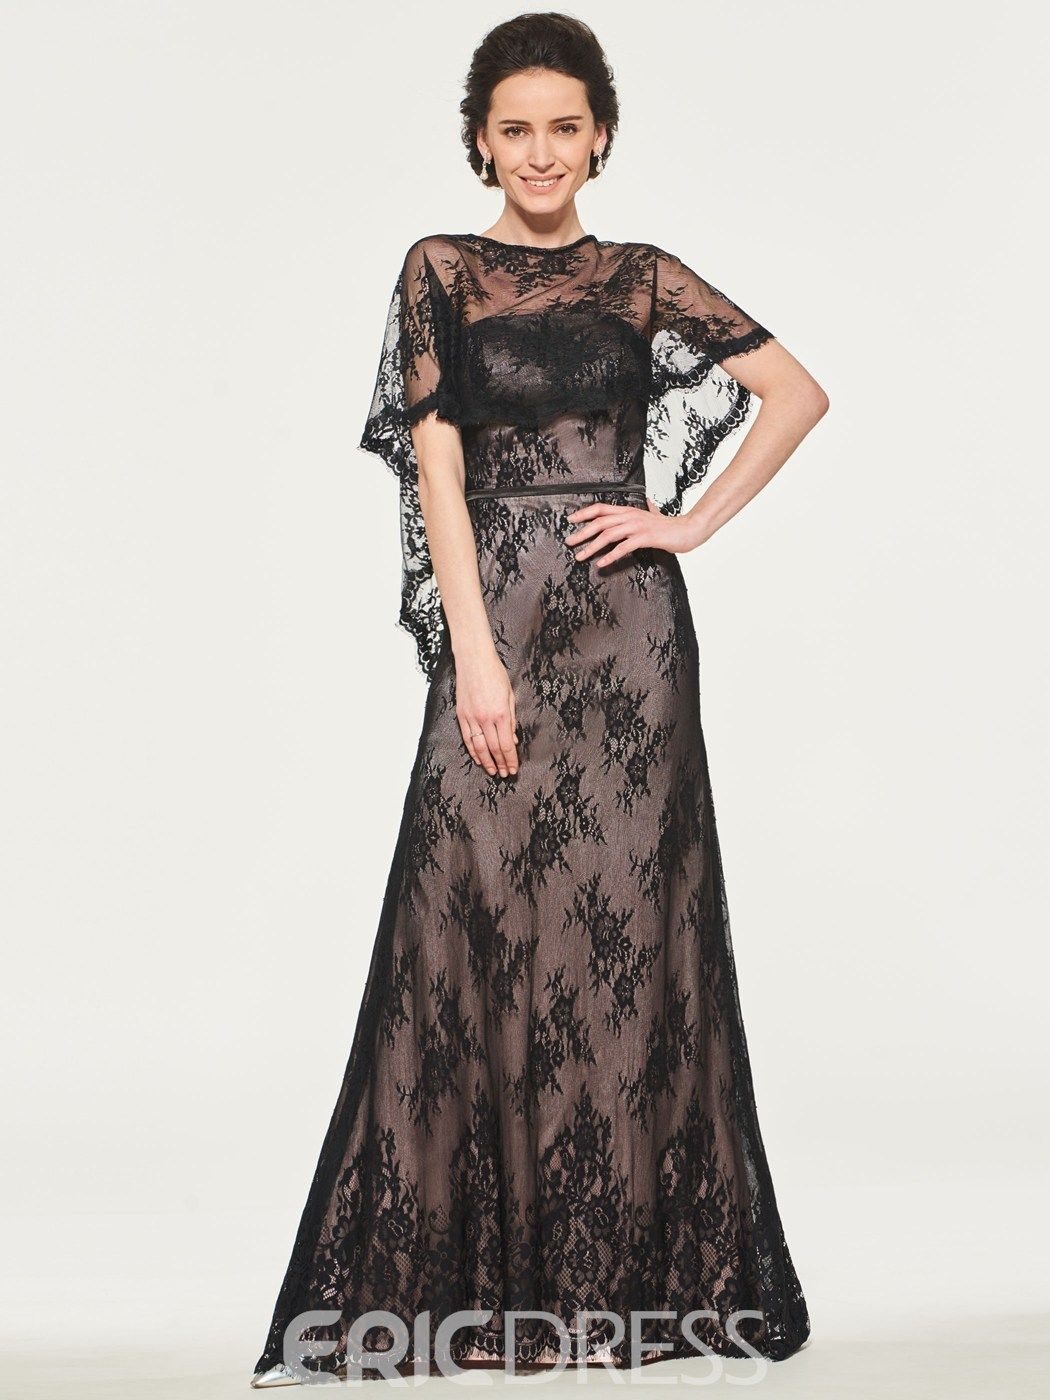 Black Lace Mother of the Bride Dress in 2020 Dress with